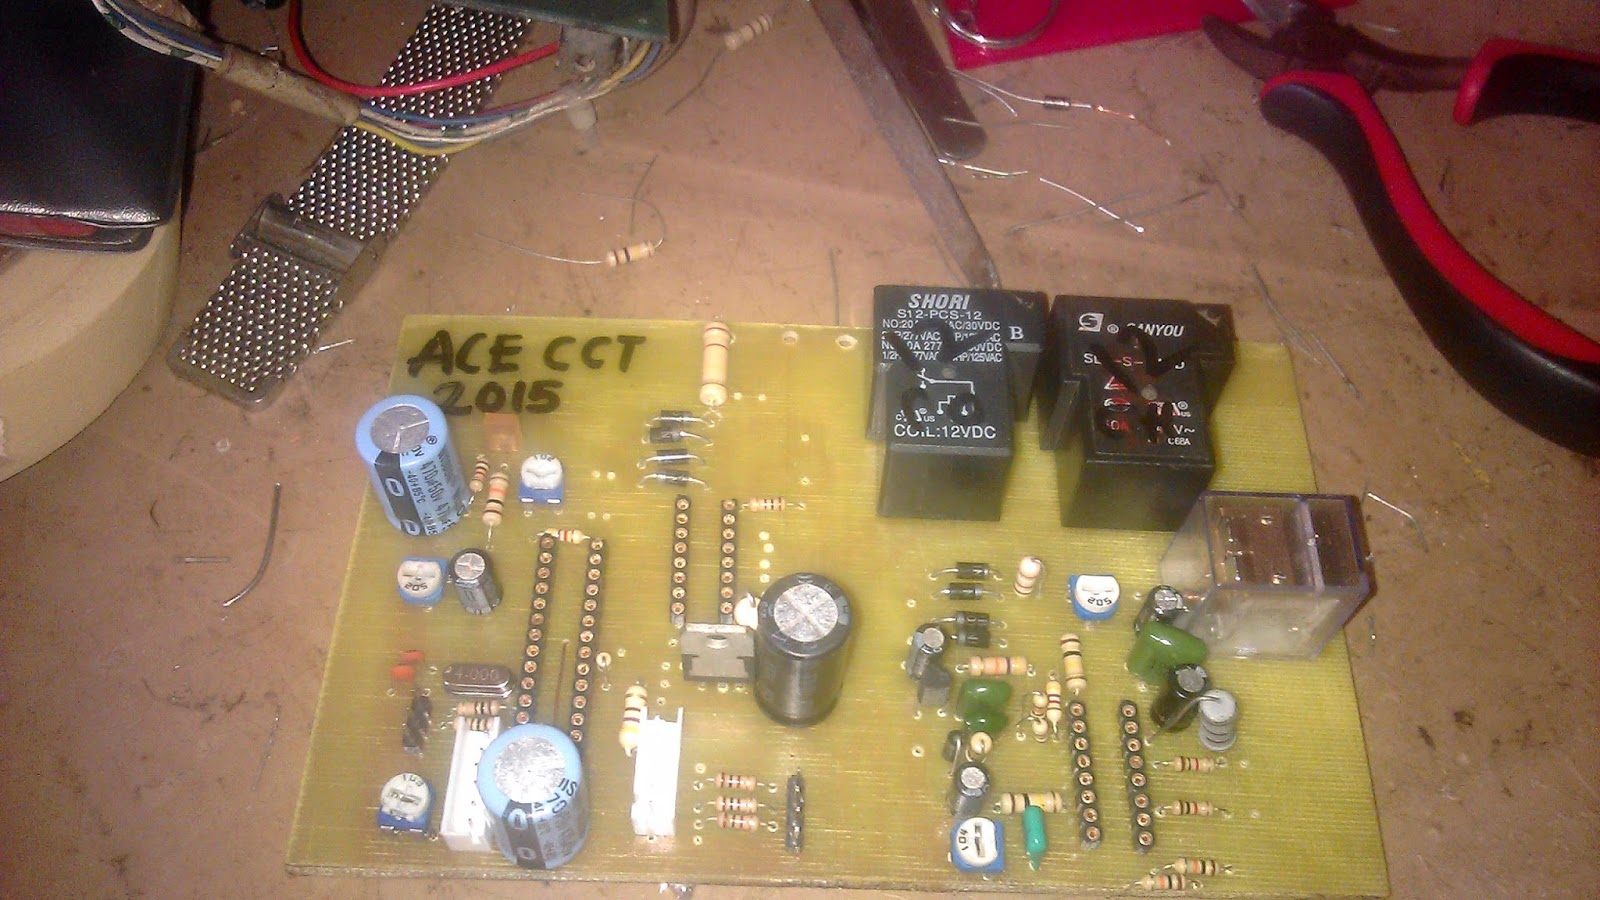 Mcu Based Inverter Control With A V R Using Pic16f876a Car Audio Amplifier Ic Ta7203p New Design 1